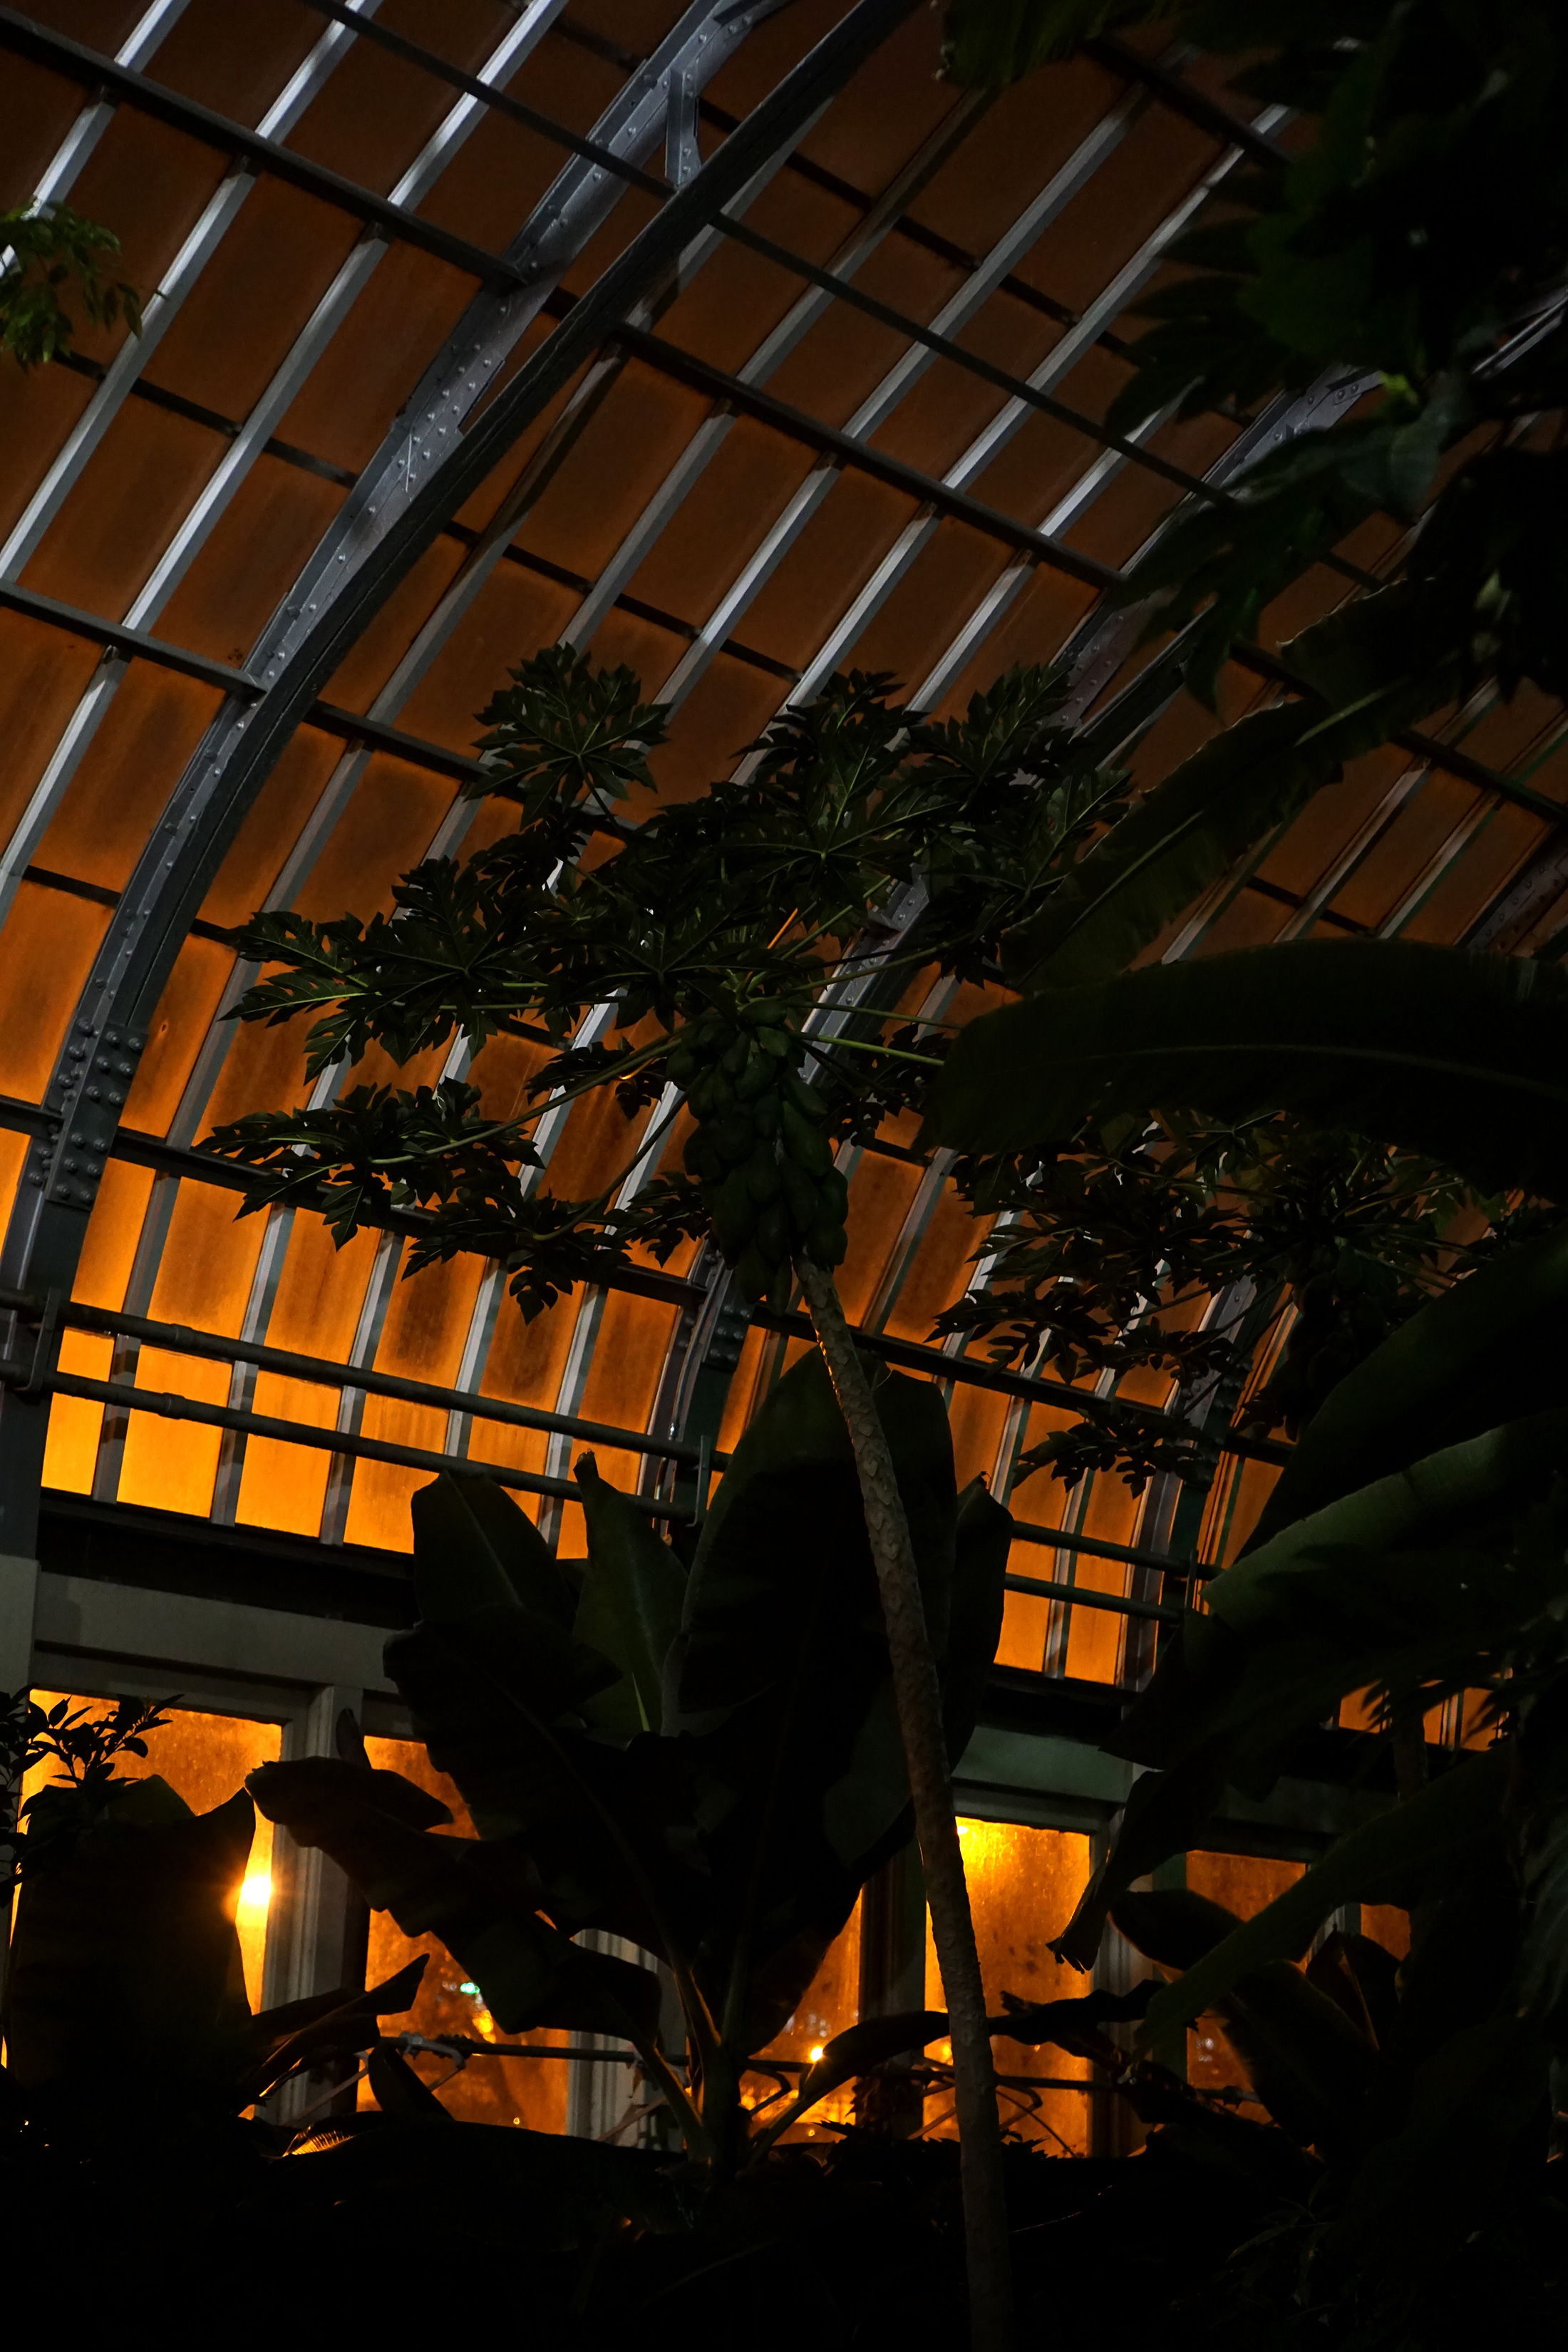 Papaya plant backlit, Garfield Park Conservatory at night, Chicago / Darker than Green